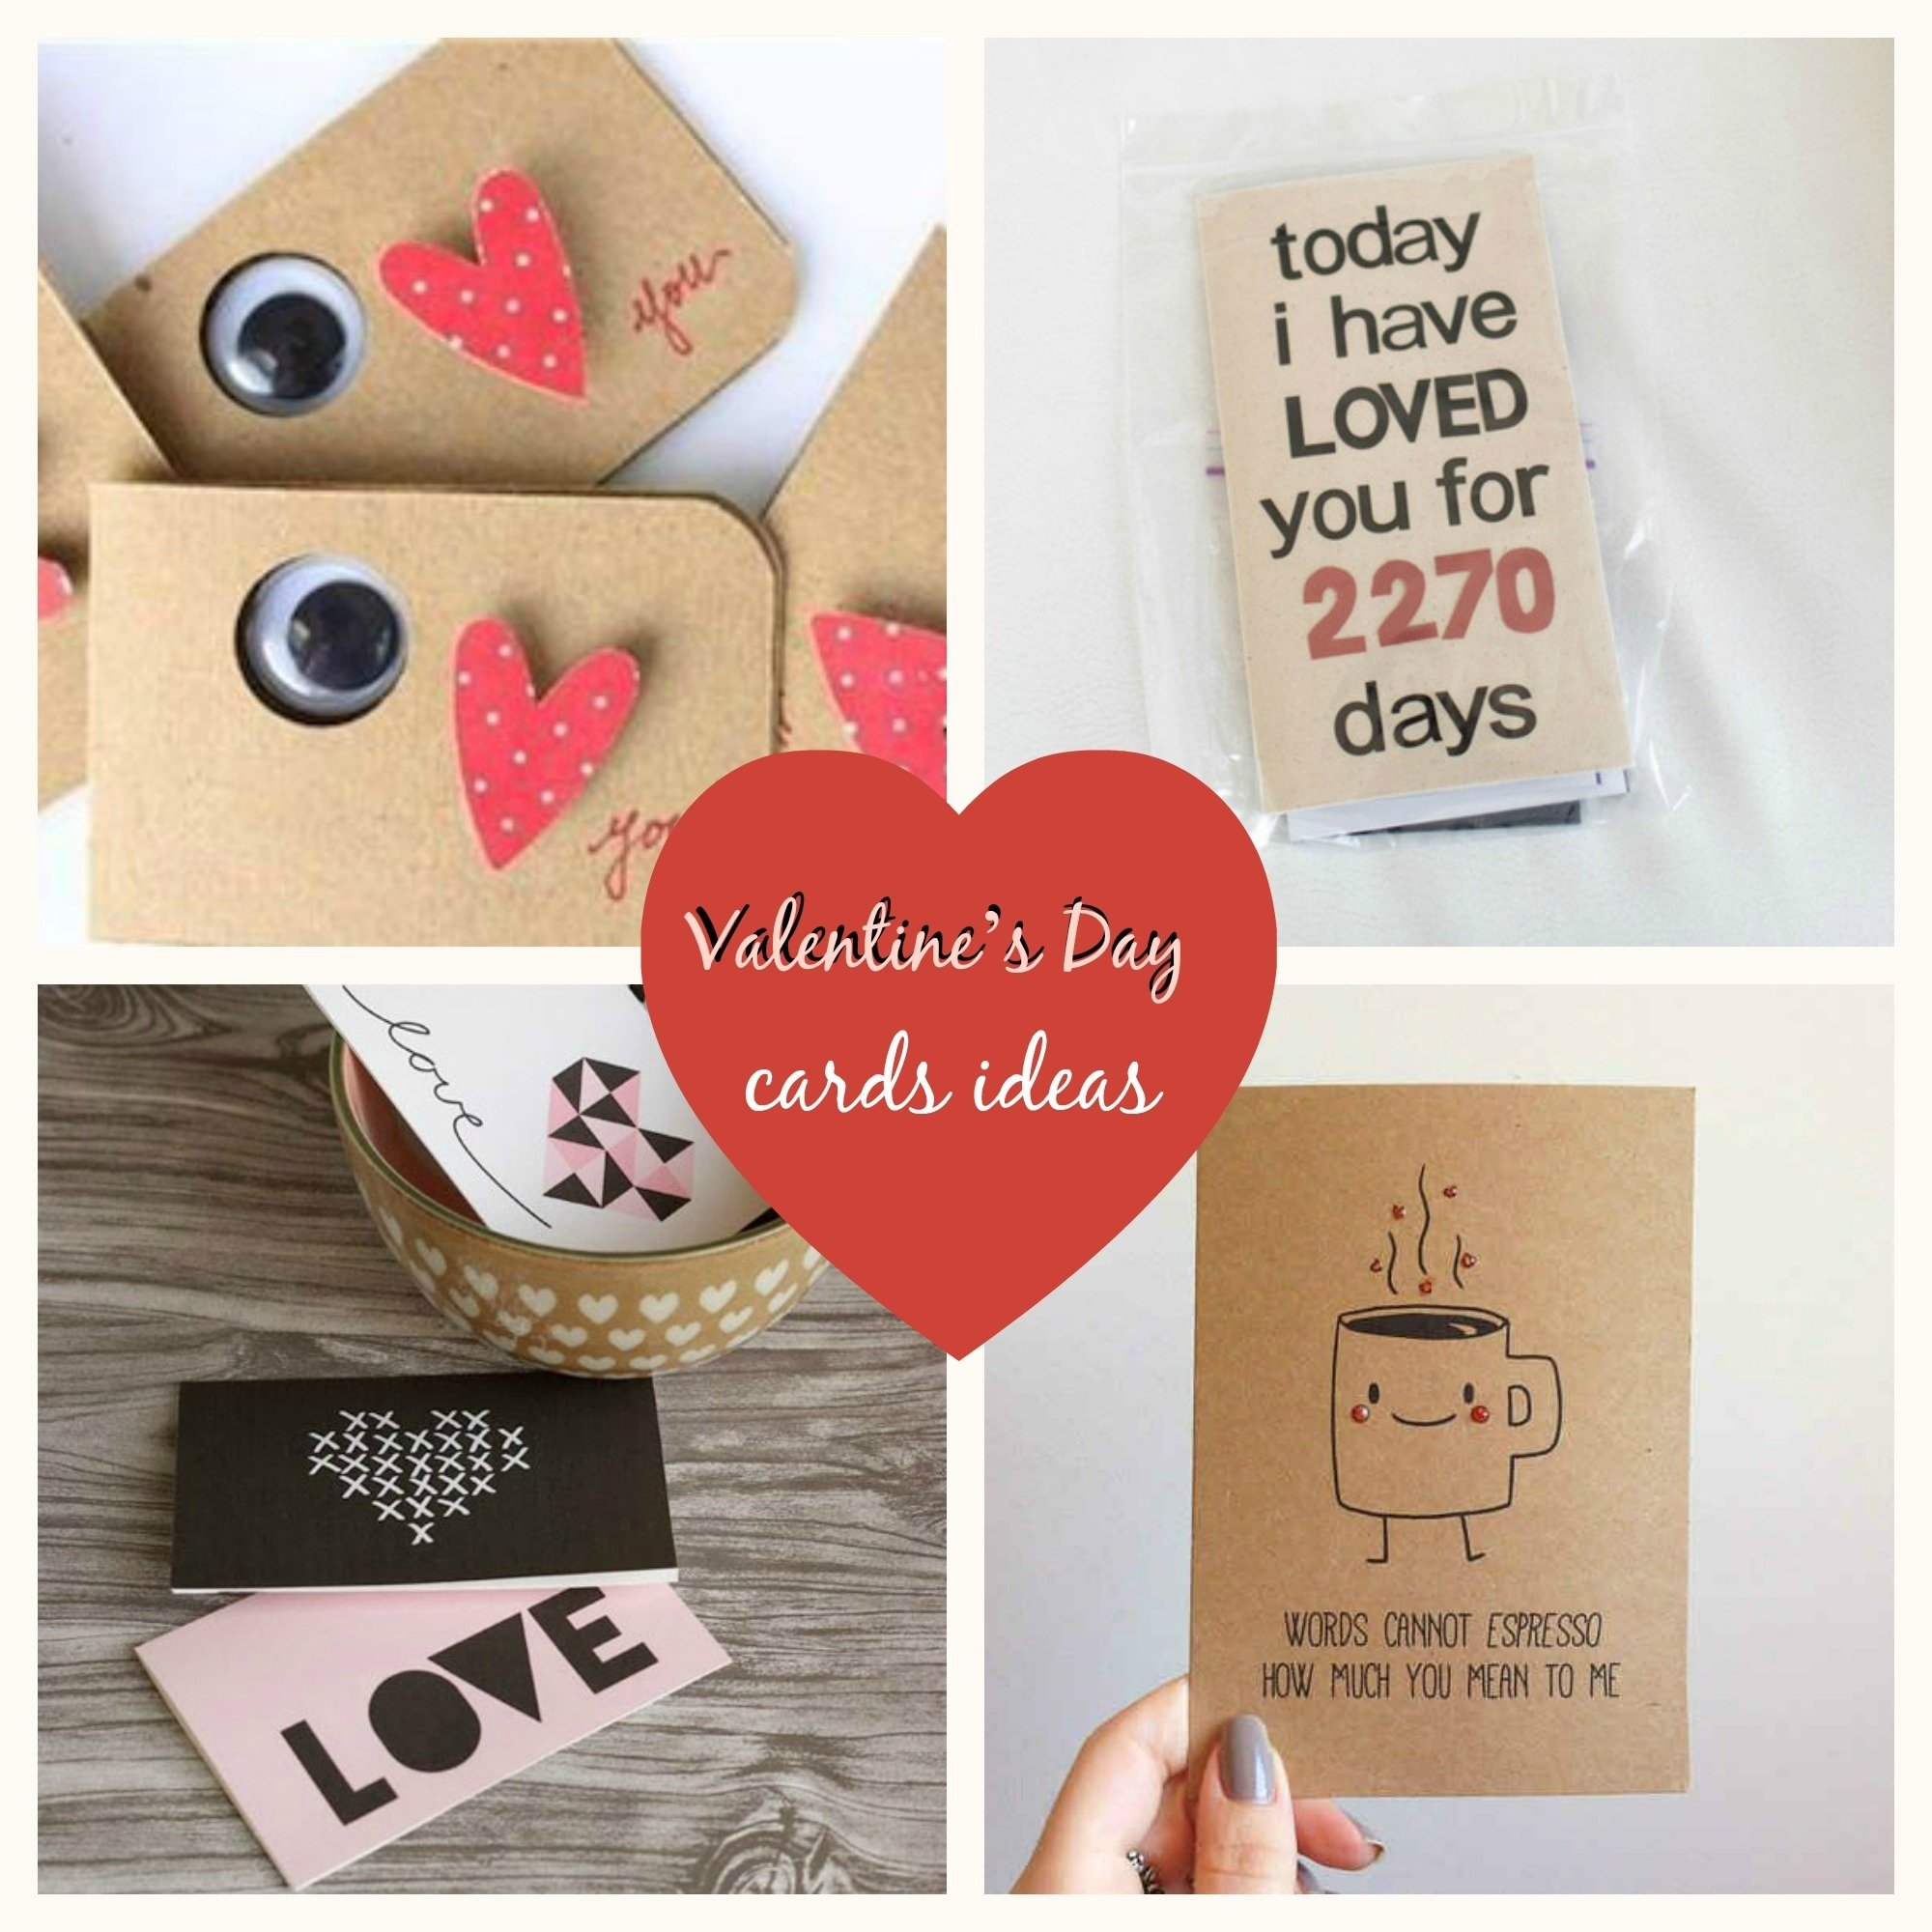 10 Fashionable Valentine Day Card Ideas Homemade chic diy inspiration valentines day cards ideas